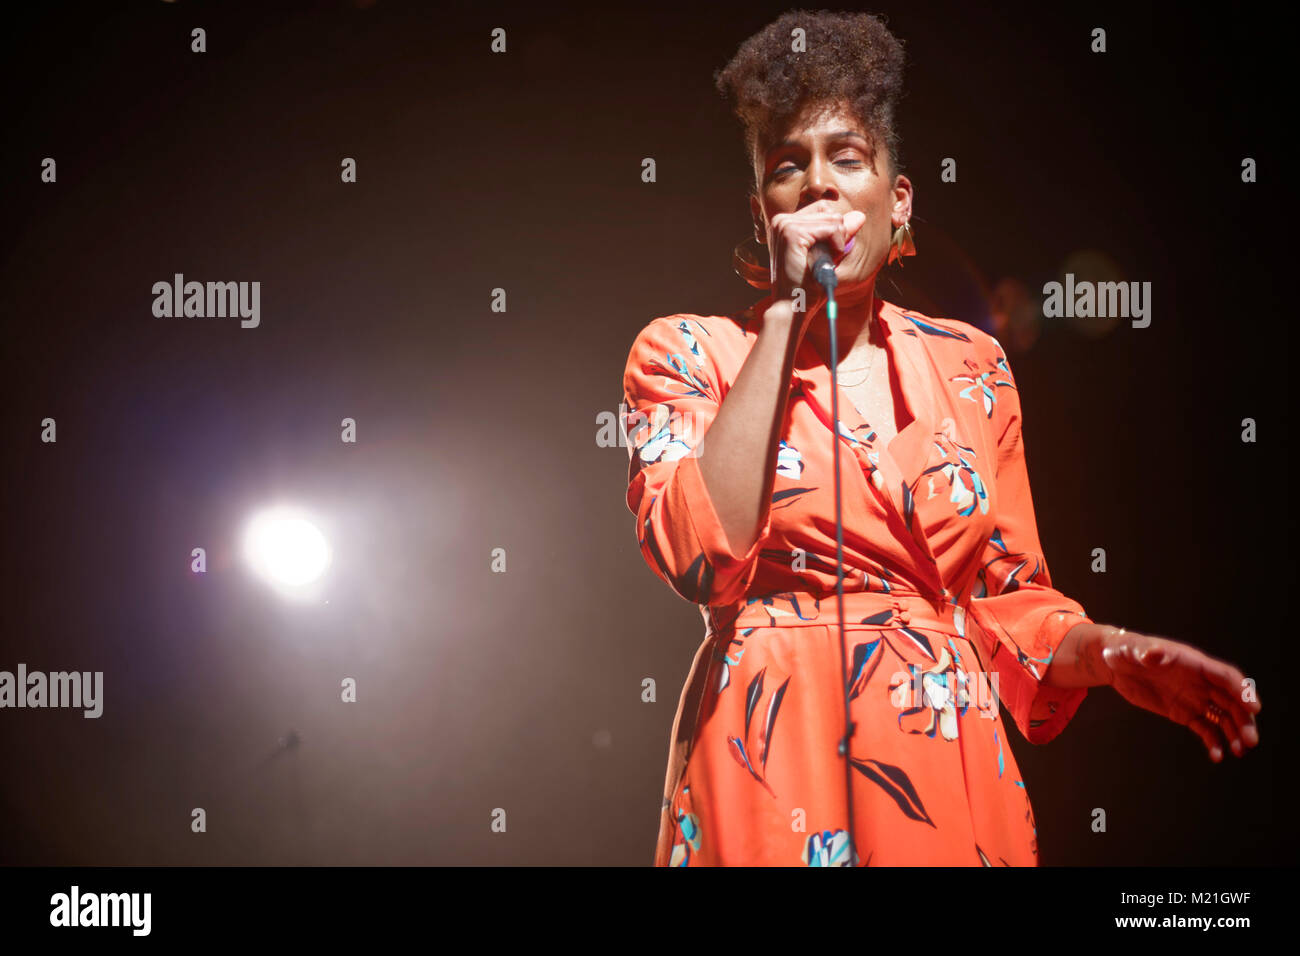 Sandra N' Kake performed in concert at The PLAN at Ris-orangis in Essonne on February 03, 2018 Credit: Véronique - Stock Image